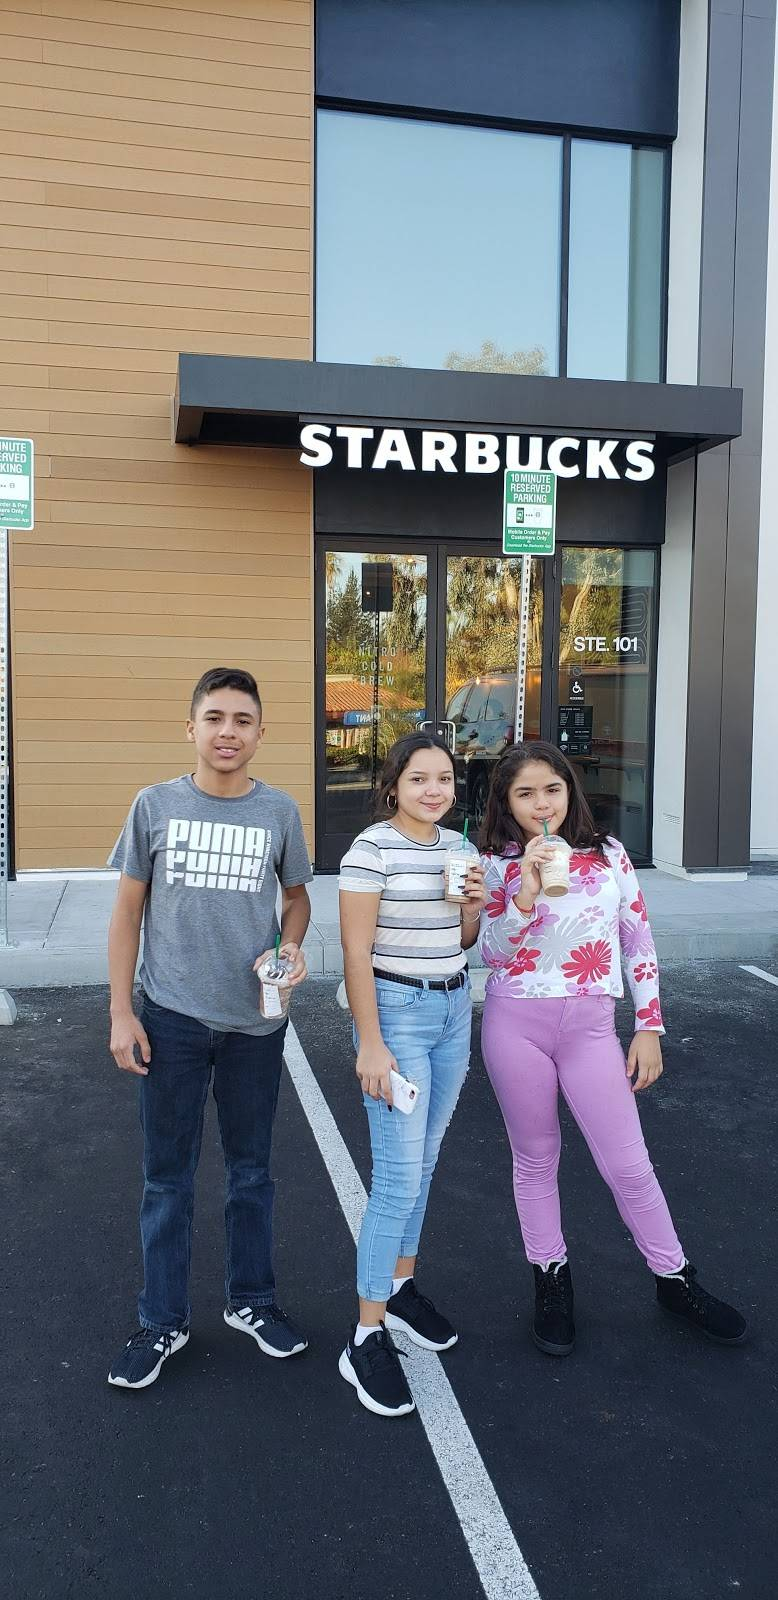 Starbucks | cafe | 4749 Calle Real, Santa Barbara, CA 93111, USA | 8056813272 OR +1 805-681-3272